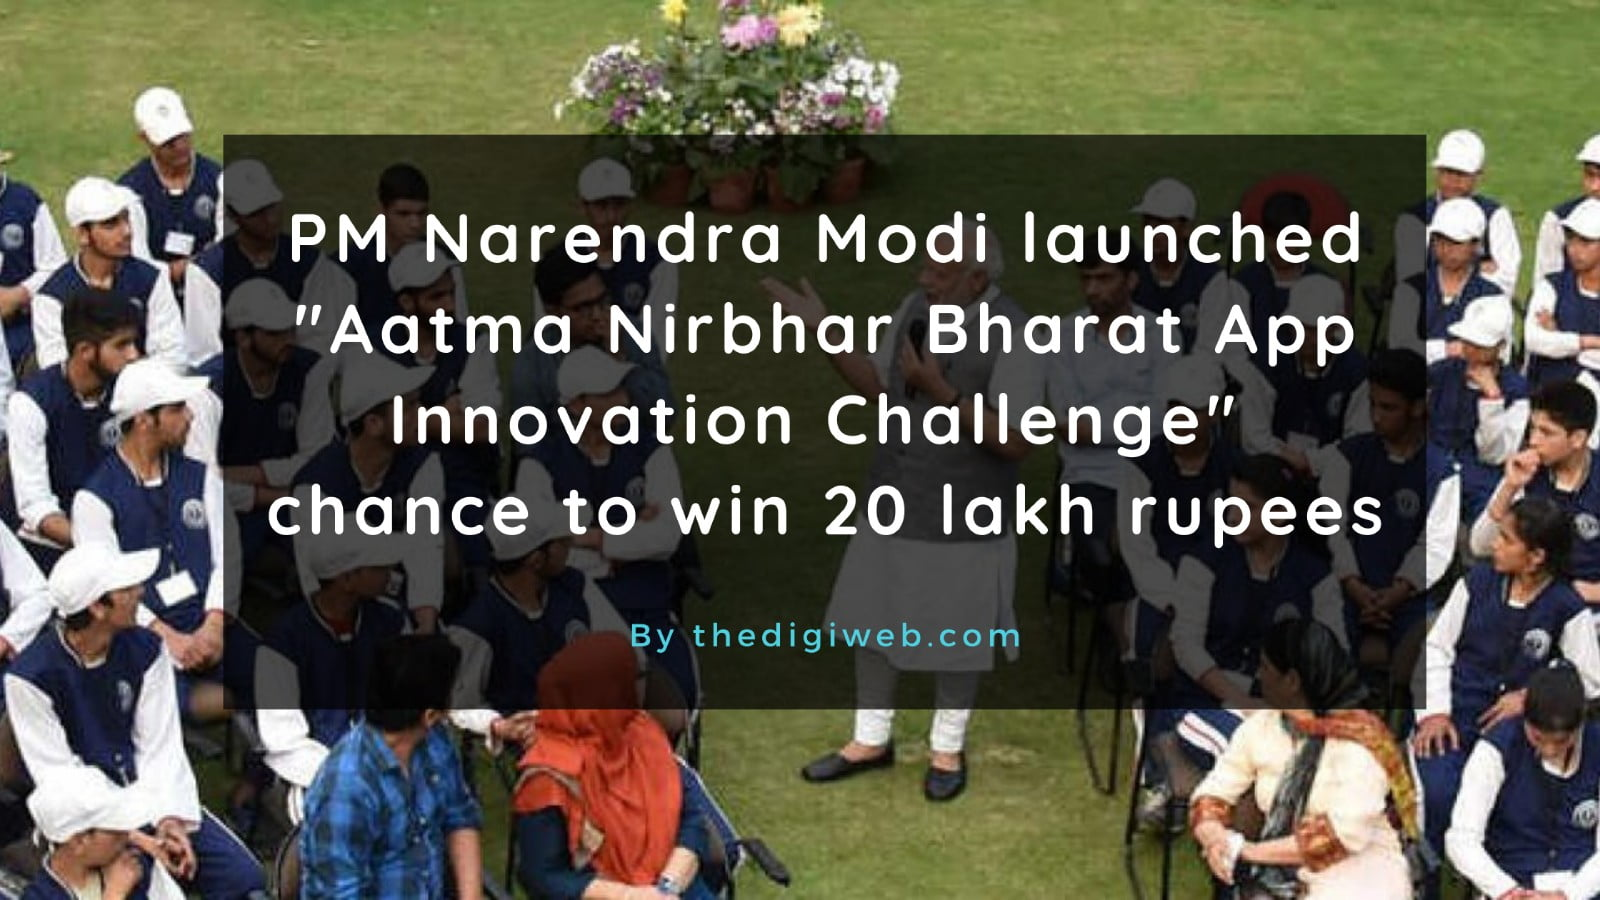 PM Narendra Modiji launched Aatma Nirbhar Bharat App Innovation Challenge chance to win 20 lakh rupees